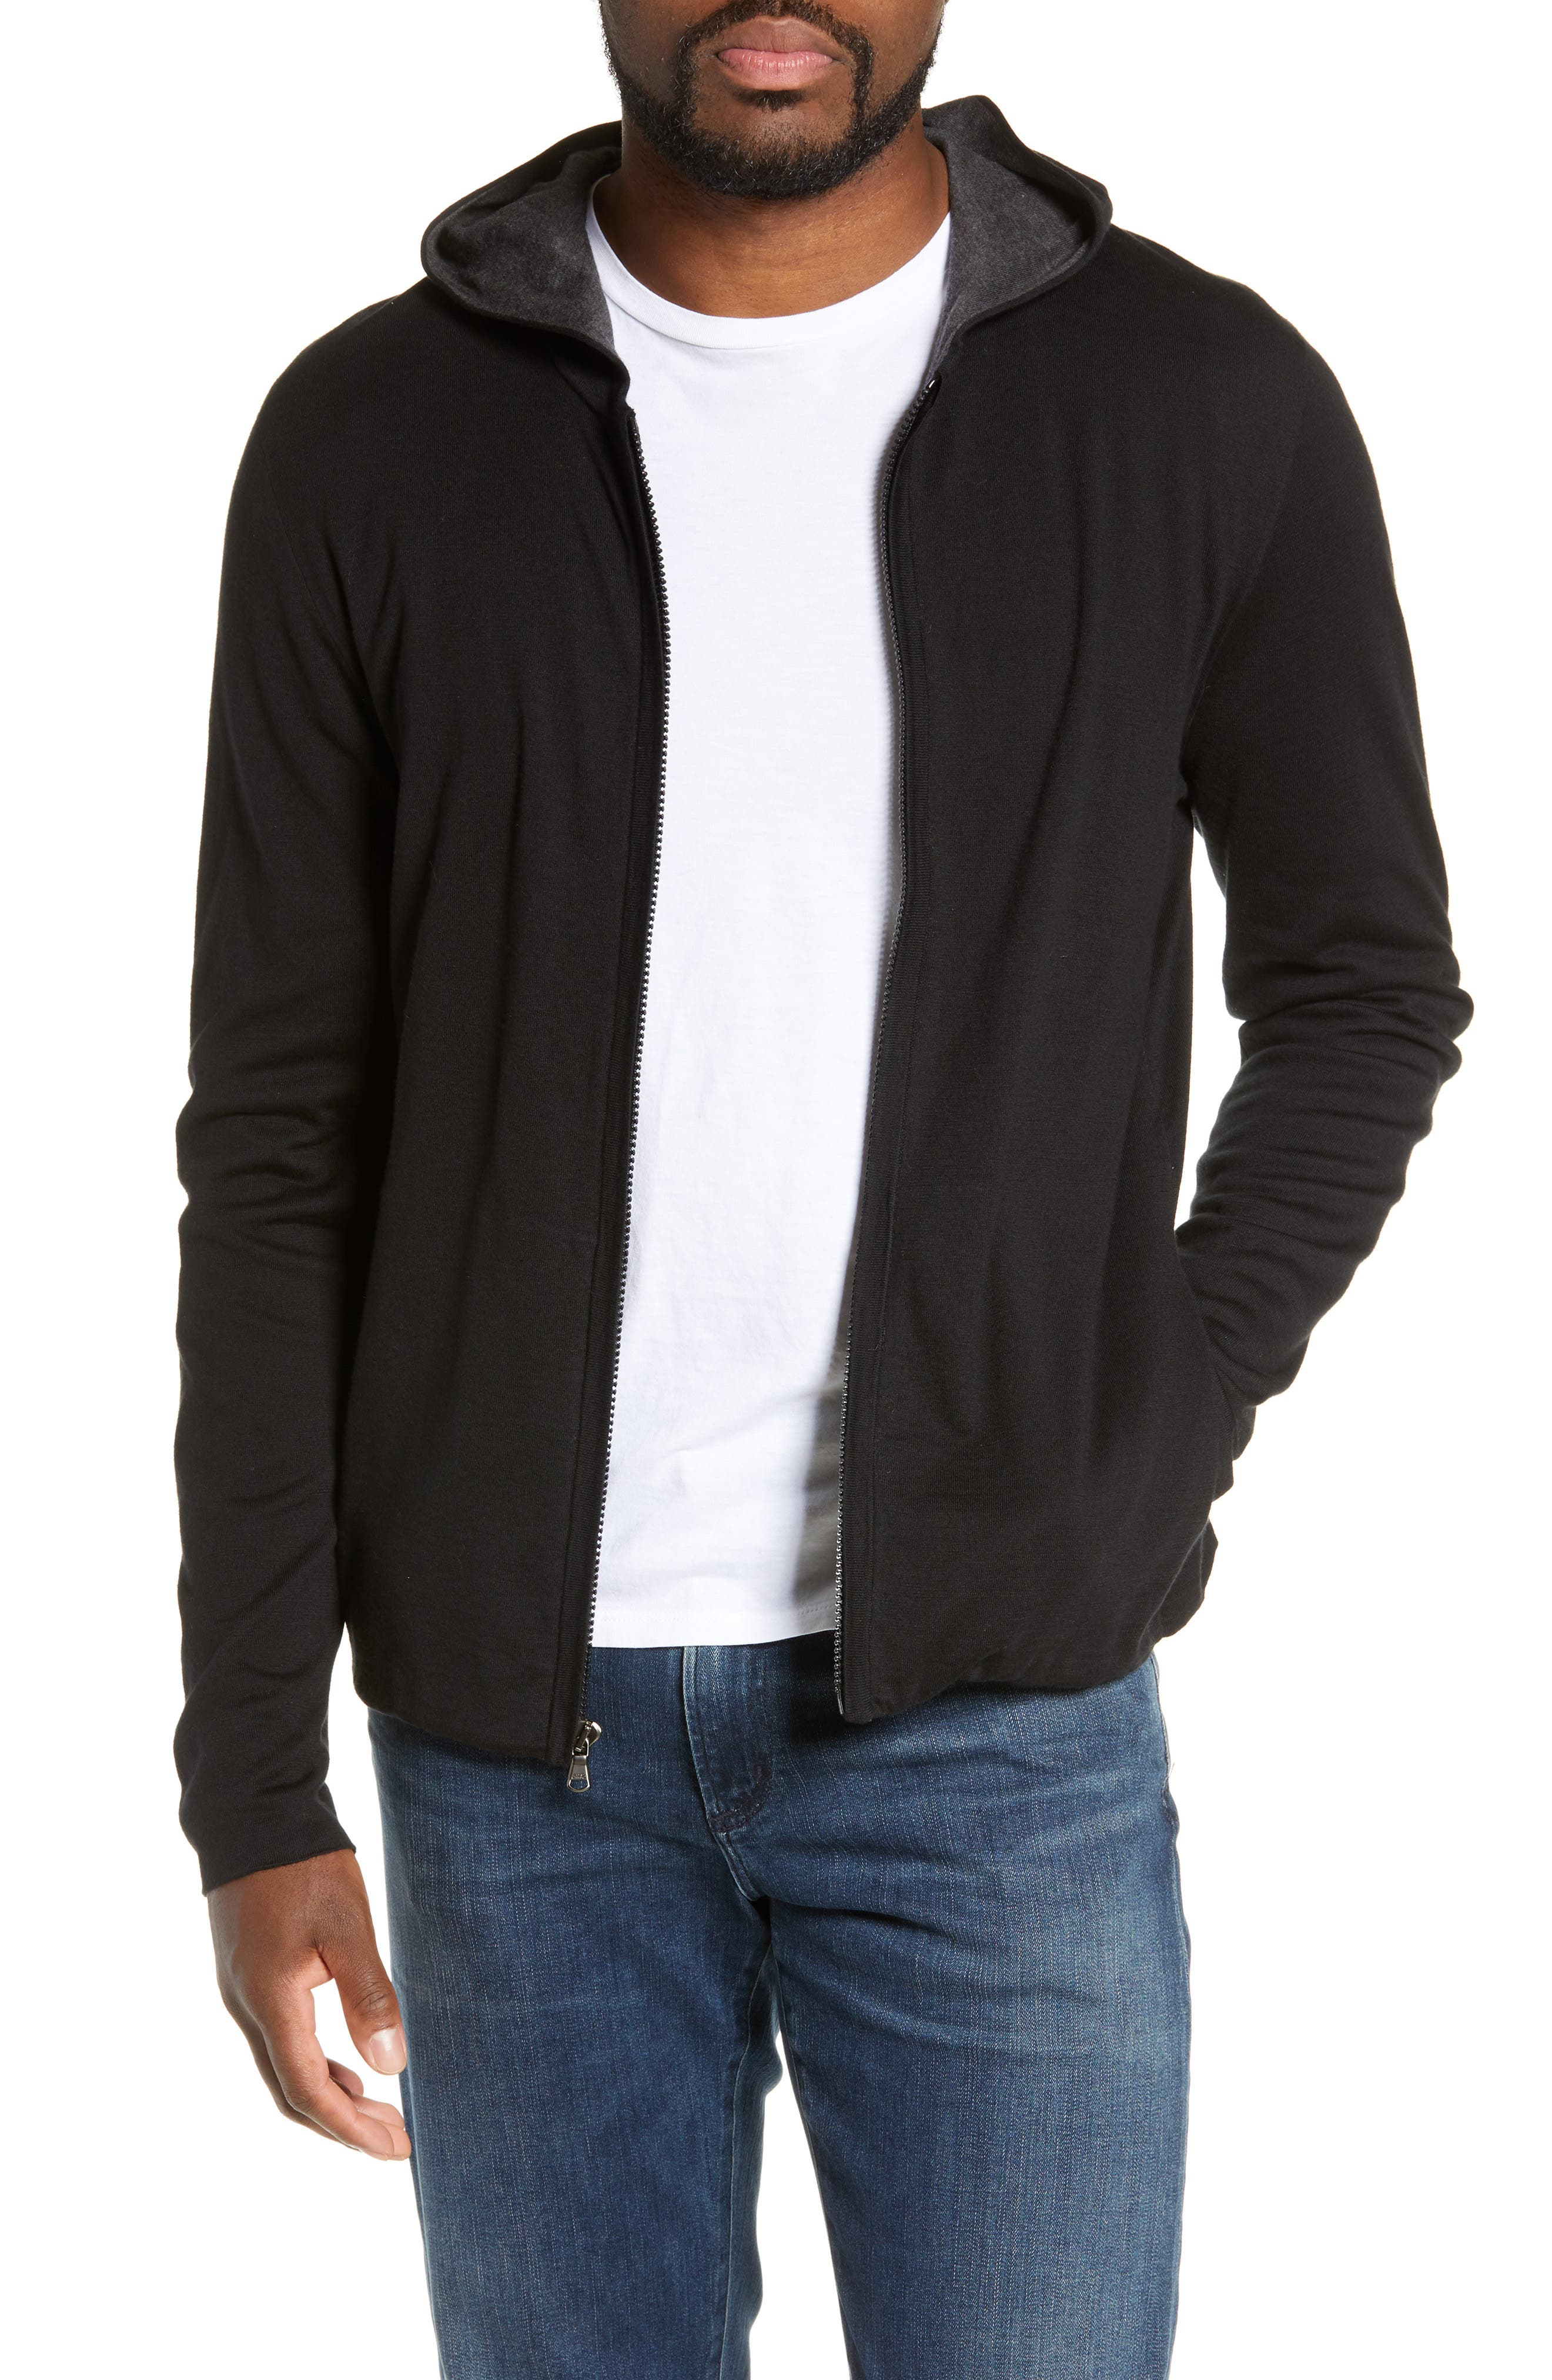 JAMES PERSE, Double Layer Full Zip Hoodie, Main thumbnail 1, color, 003